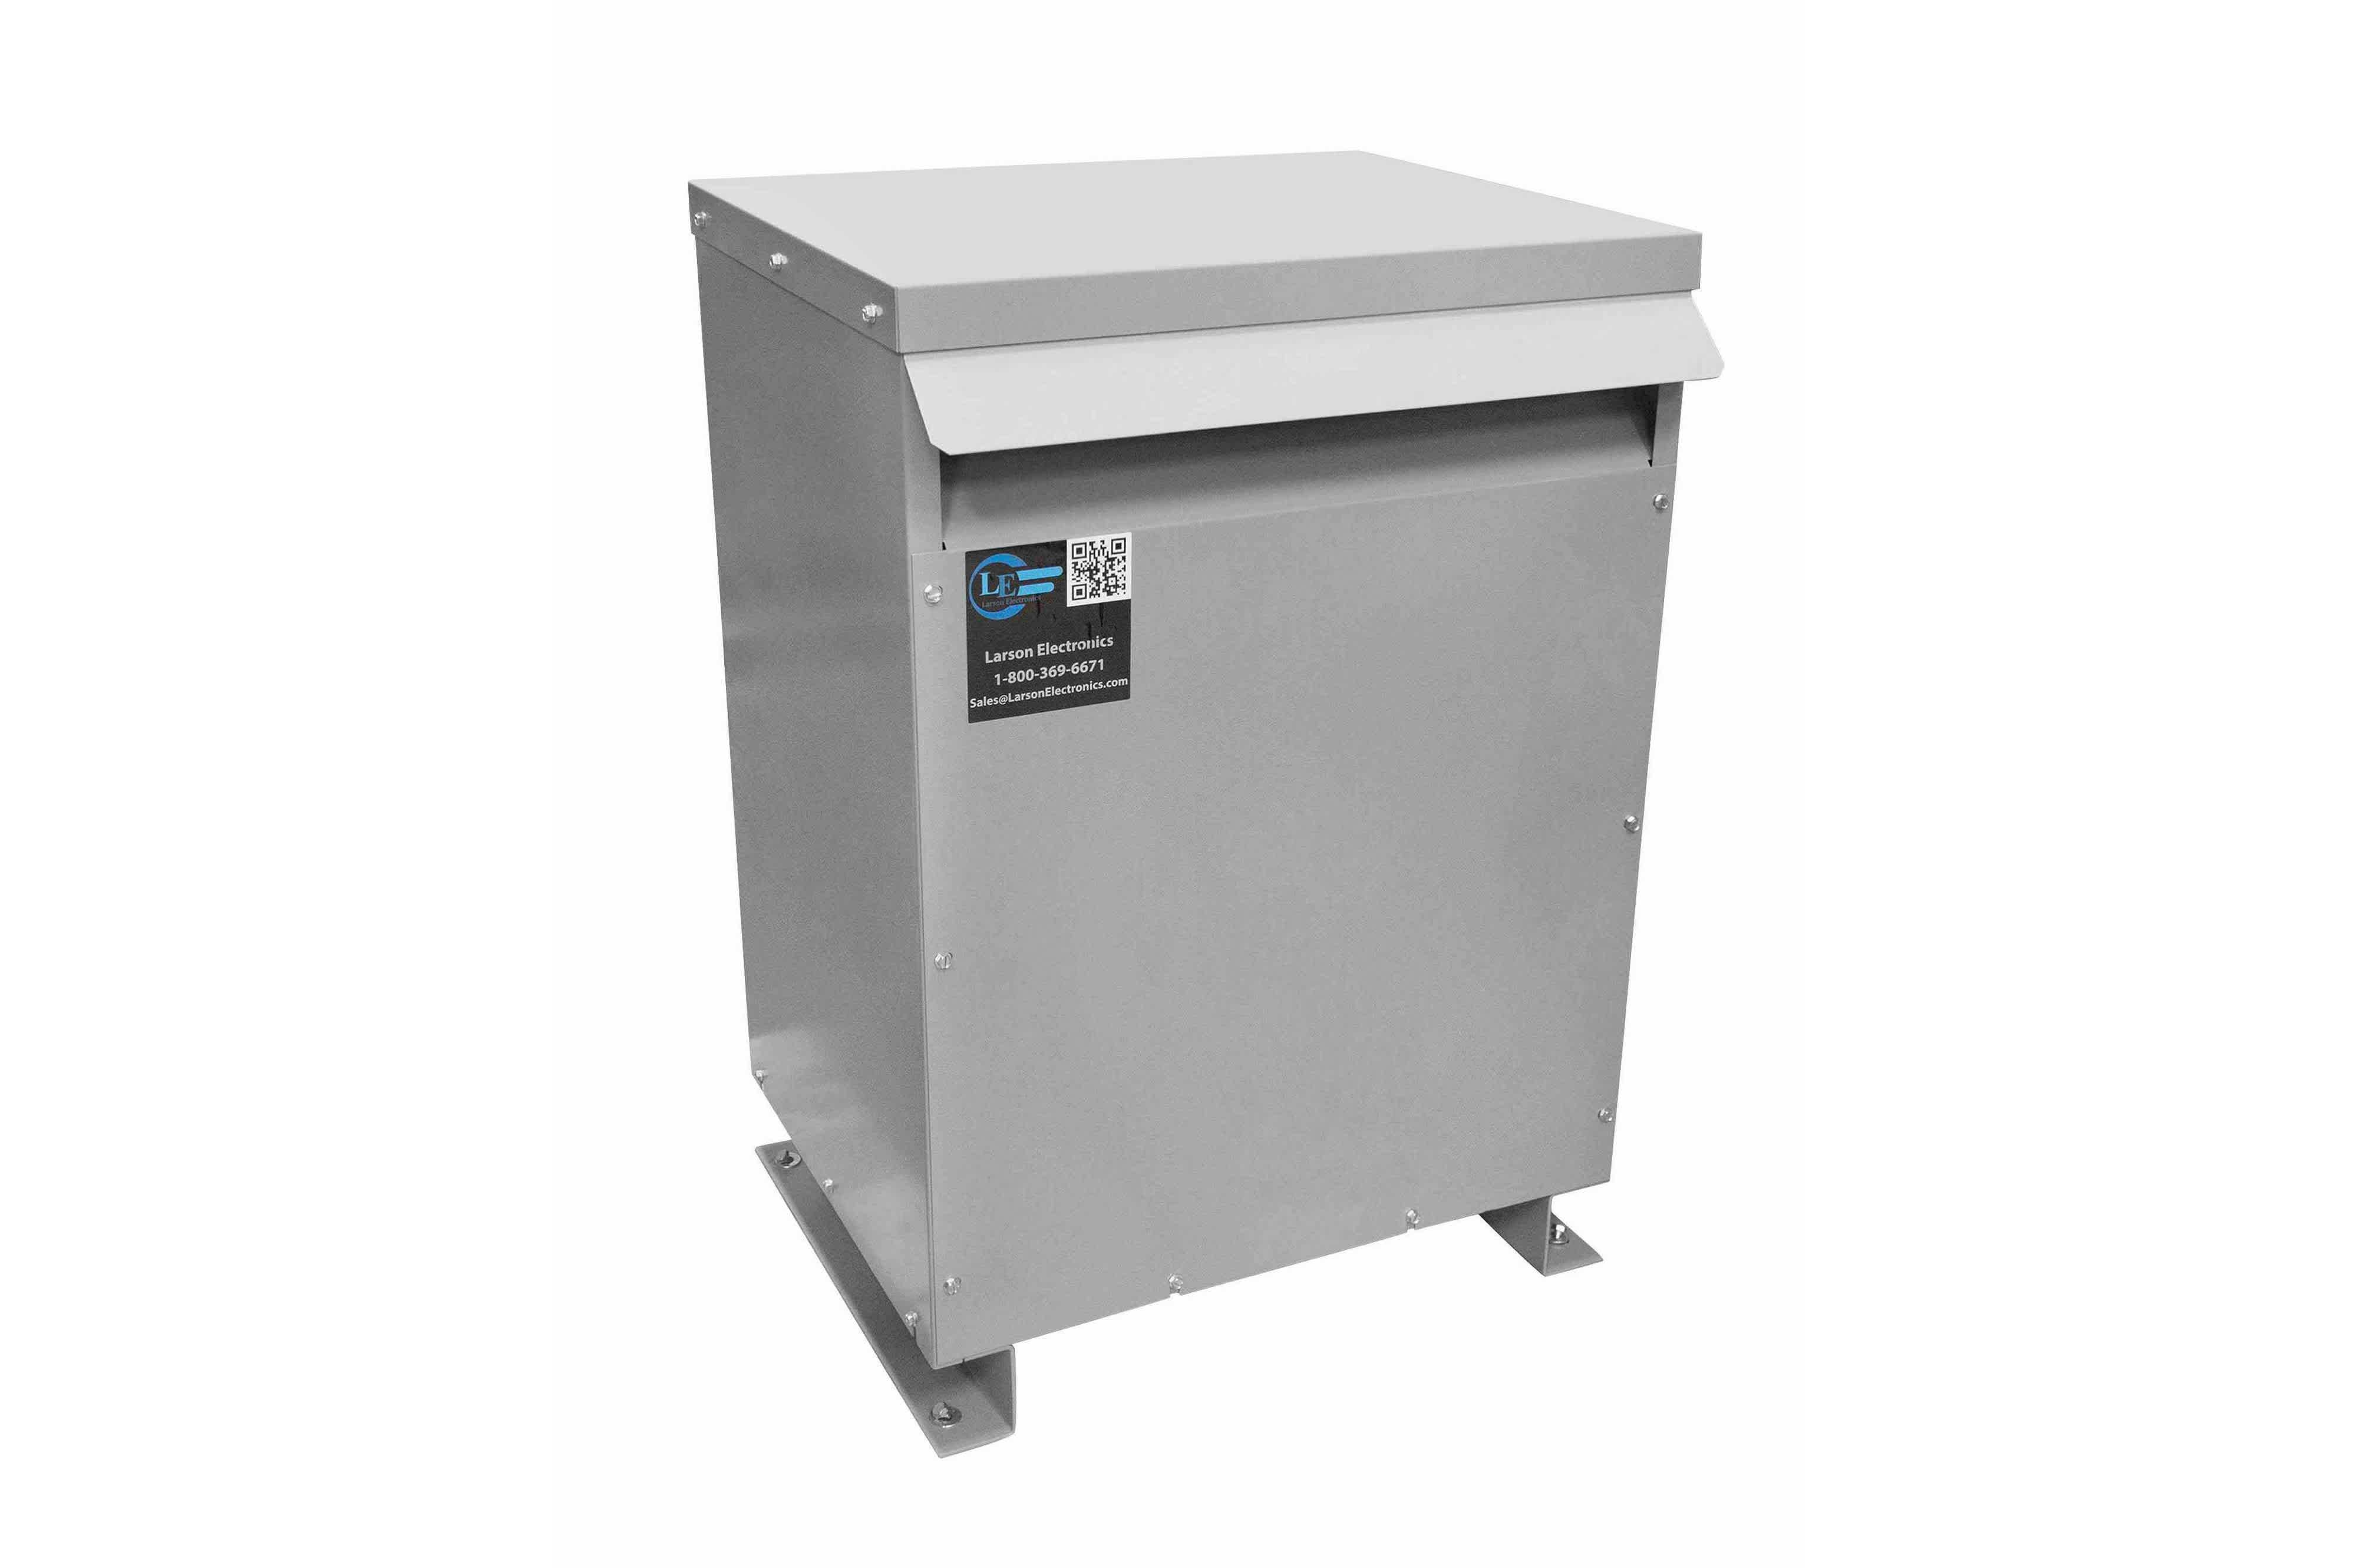 250 kVA 3PH Isolation Transformer, 600V Wye Primary, 240V Delta Secondary, N3R, Ventilated, 60 Hz